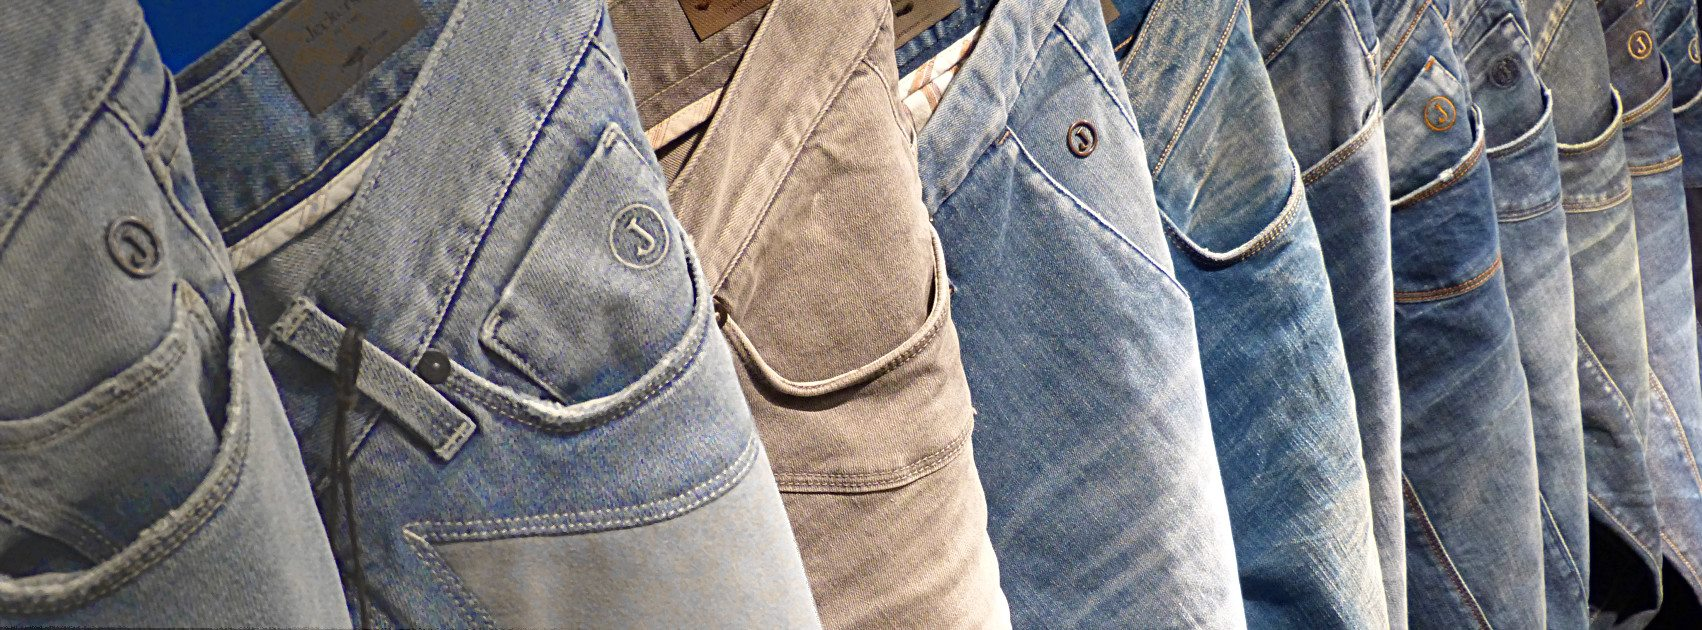 pantaloni jeans jeckerson made in italy